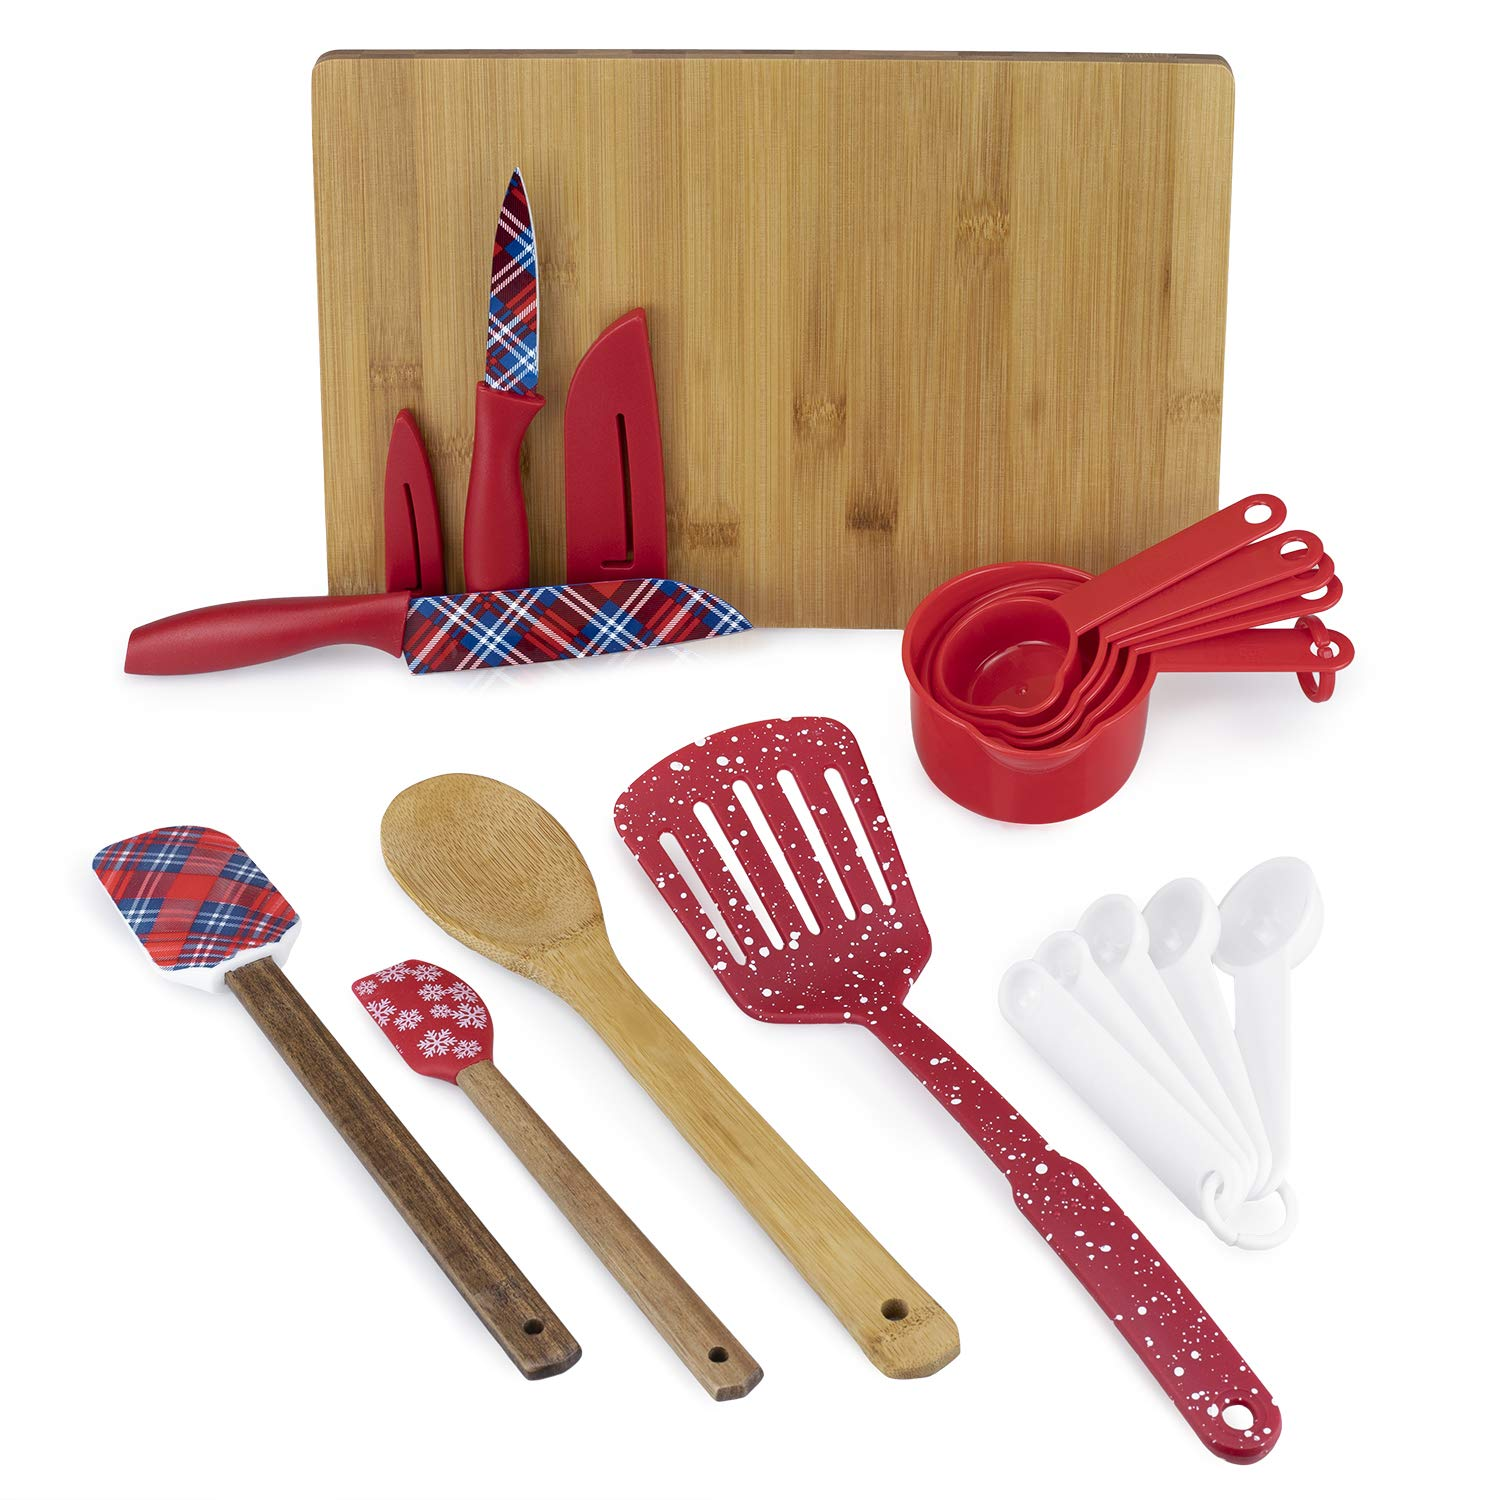 Cook with Color 19 Pc Kitchen Gadget Set, Christmas Gift, Christmas Kitchen Decor, Silicone Spatulas, Acacia Wood Spoon & Cutting Board, Measuring Cups and Spoons, Stainless Steel Knives, Nylon Turner